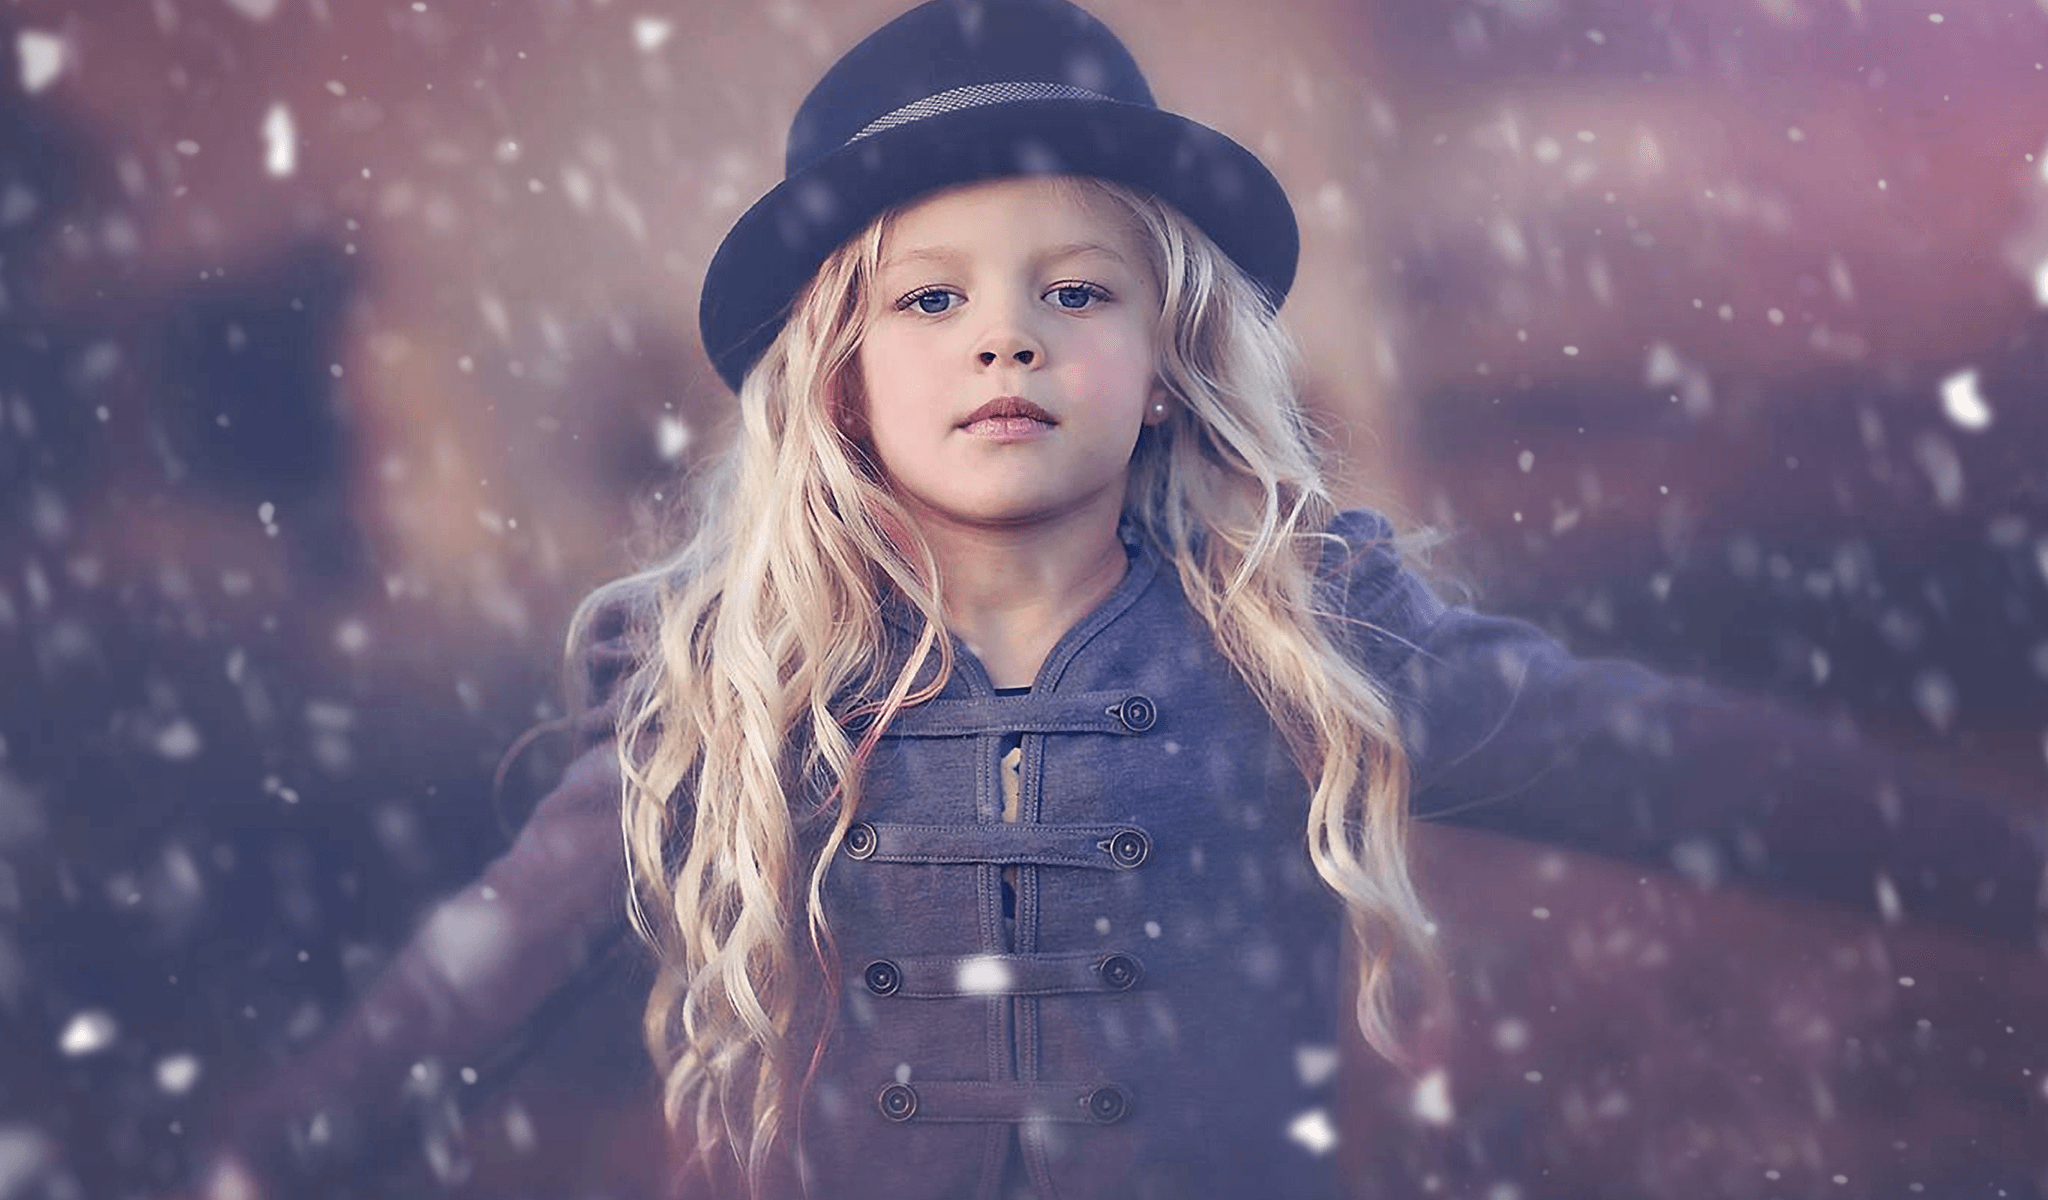 Photoshop Actions – Pretty Photoshop Actions